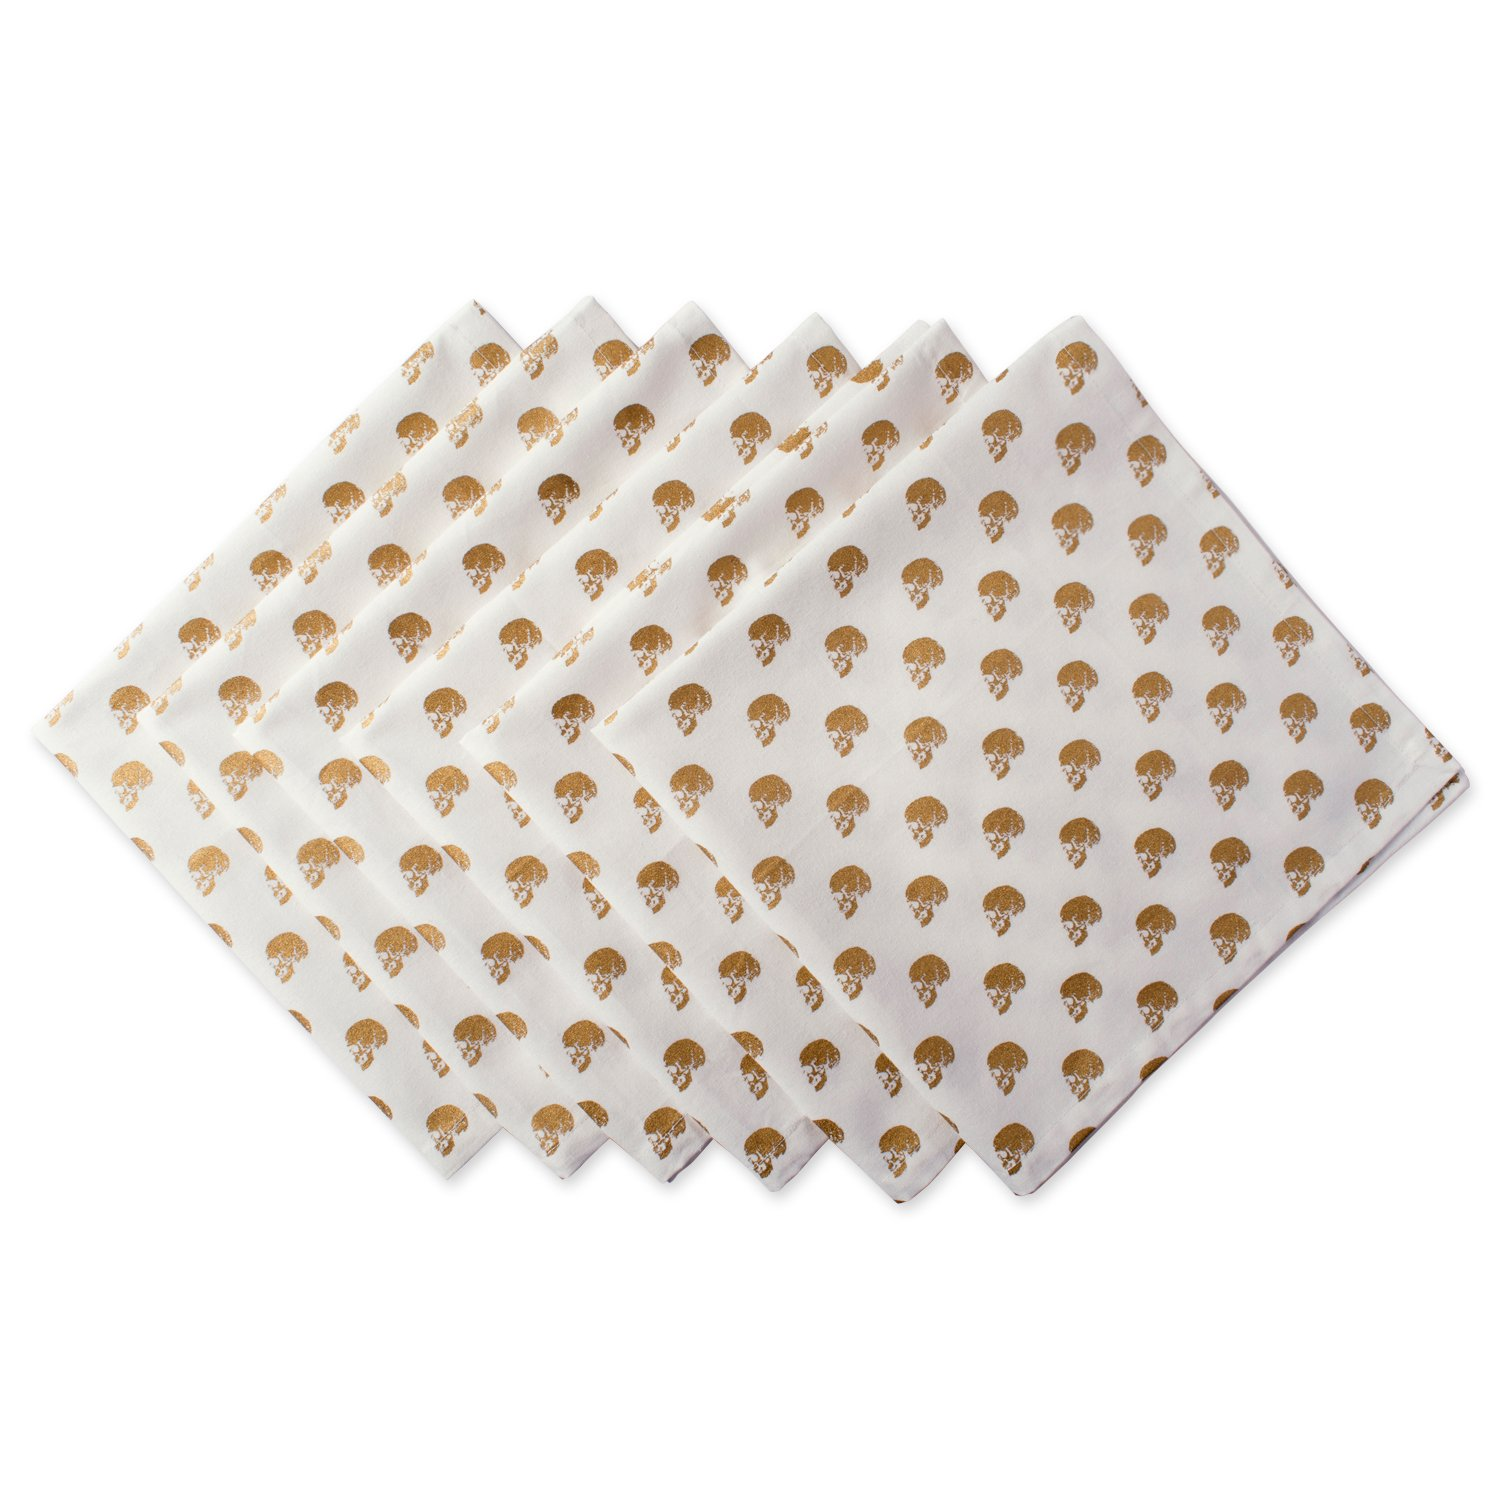 DII Oversized 20x20 Cotton Napkin, Gold Skull - Perfect for Halloween, Dinner Parties and Scary Movie Nights